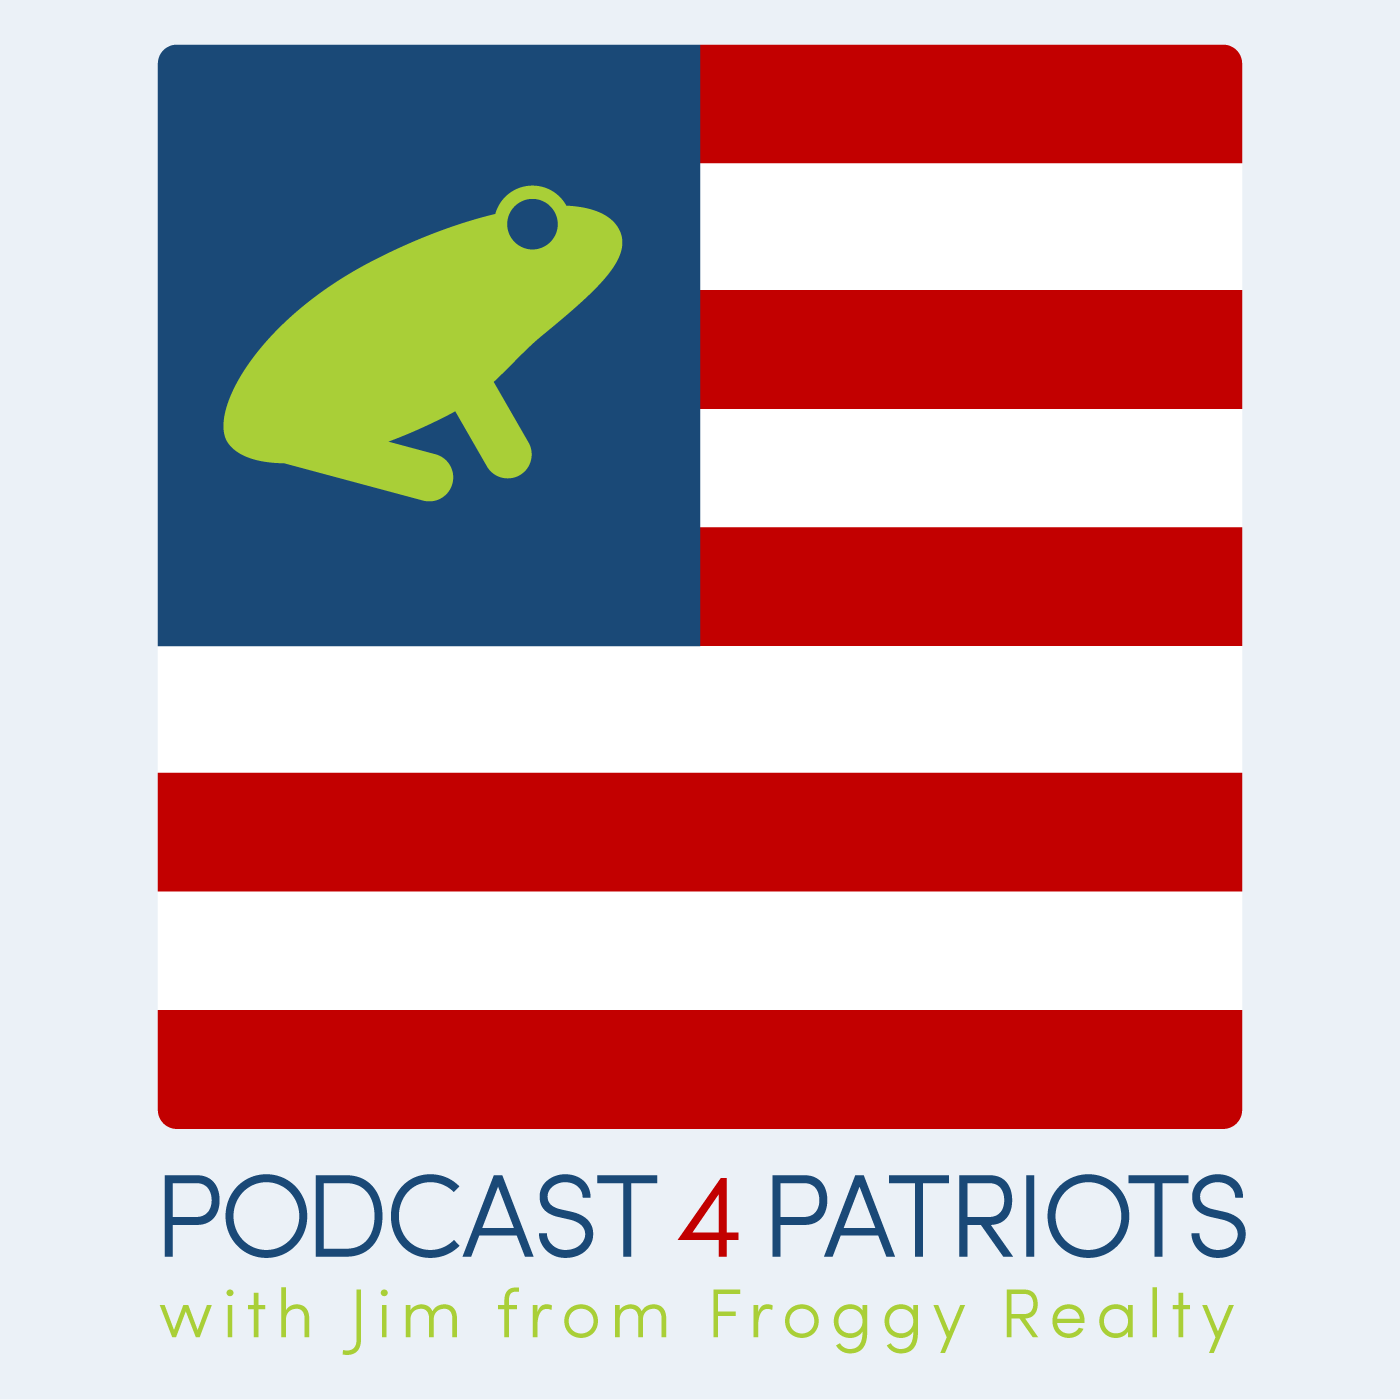 The Podcast4Patriots